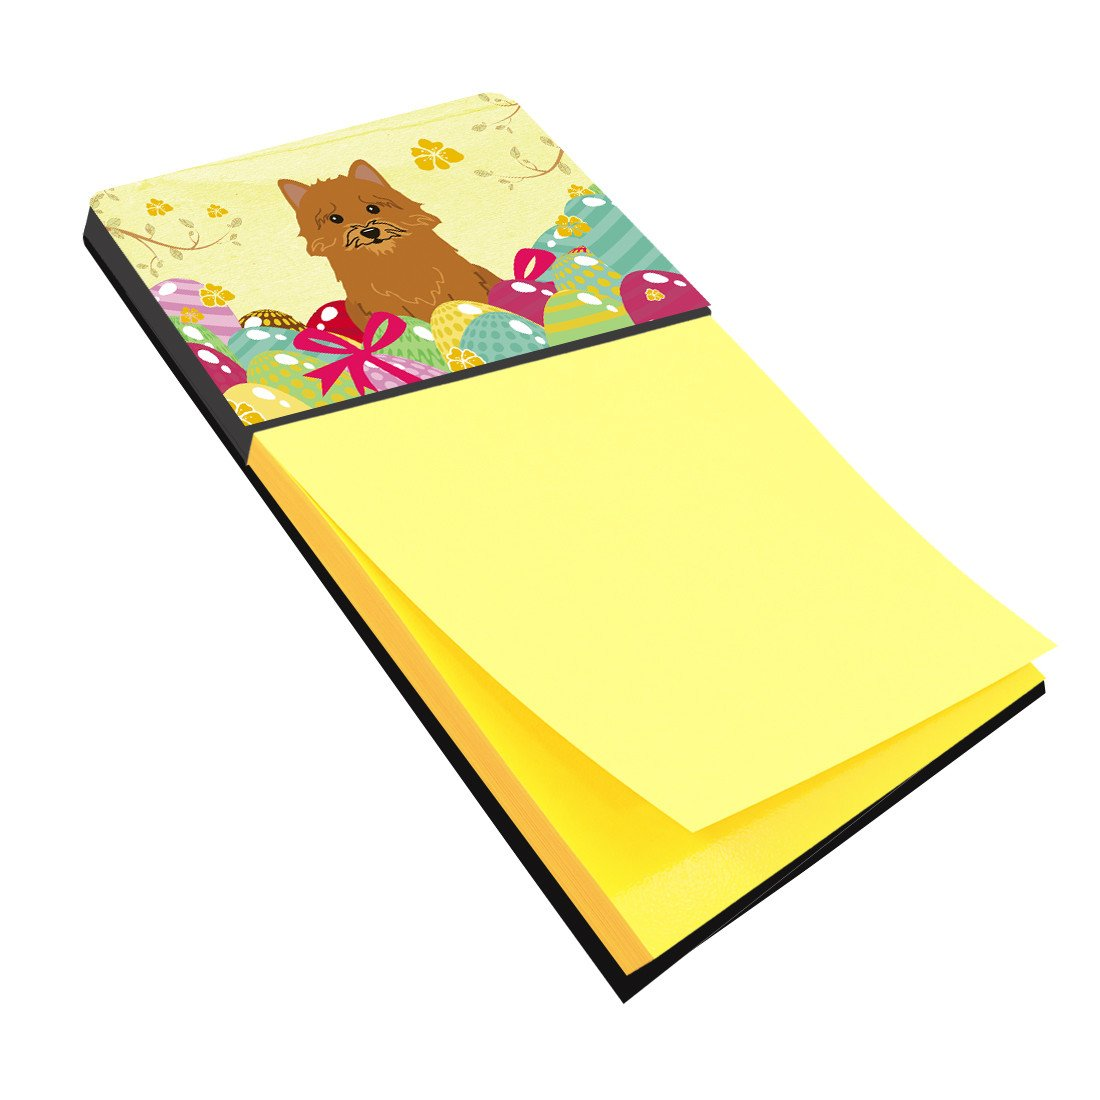 Easter Eggs Norwich Terrier Sticky Note Holder BB6020SN by Caroline's Treasures